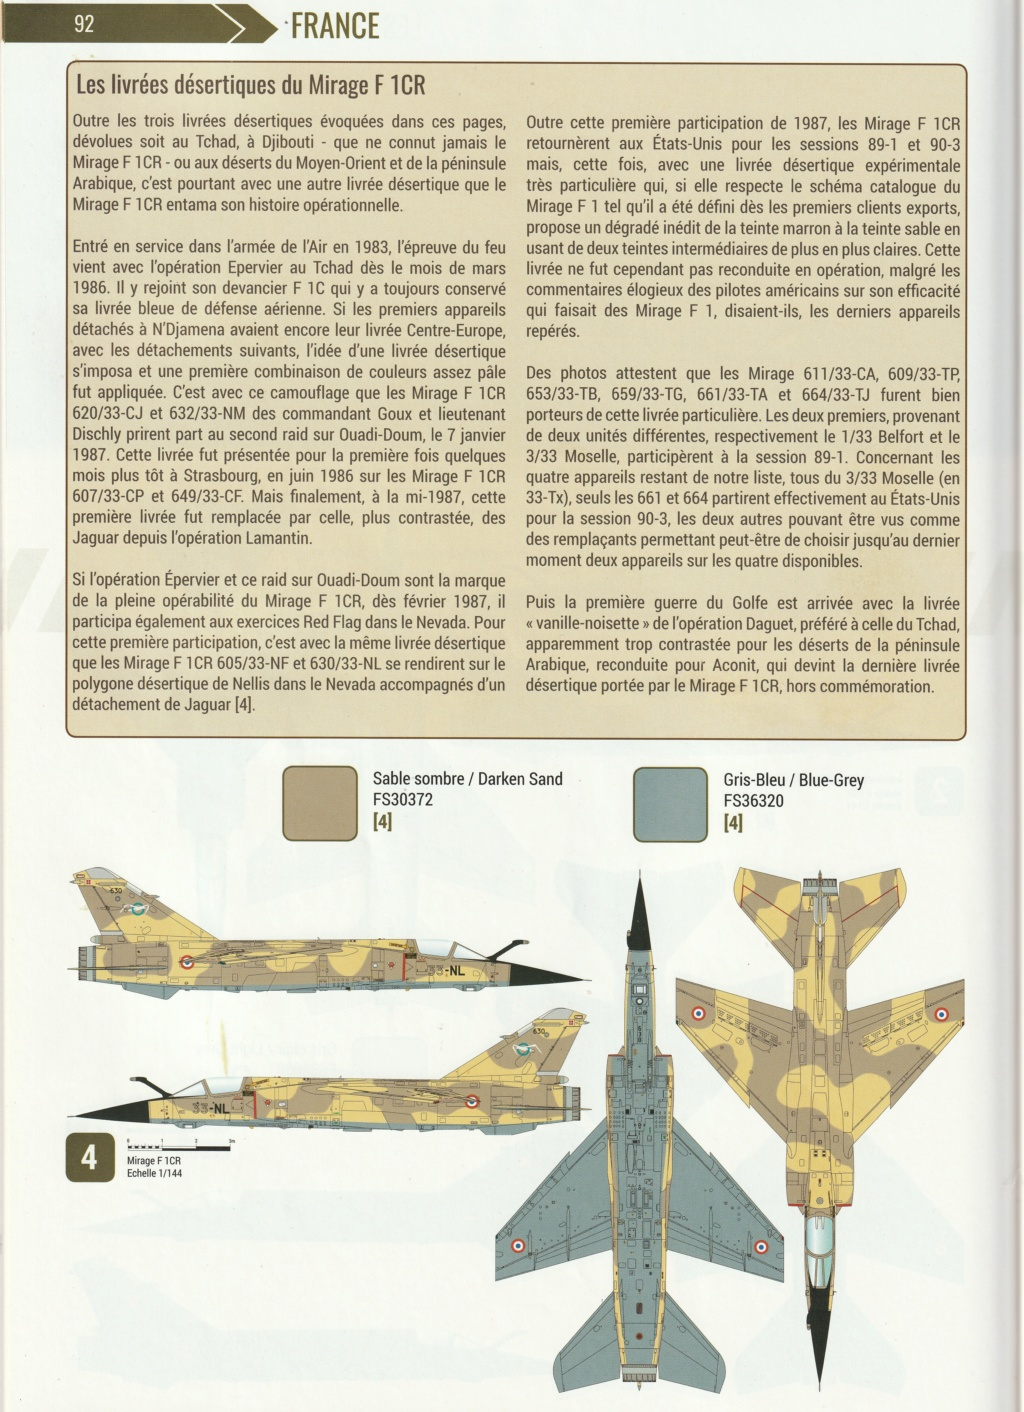 """Mirage F.1C EC 01/30 """"Valois"""" 1/72 (Special Hobby 72388) Img_2015"""